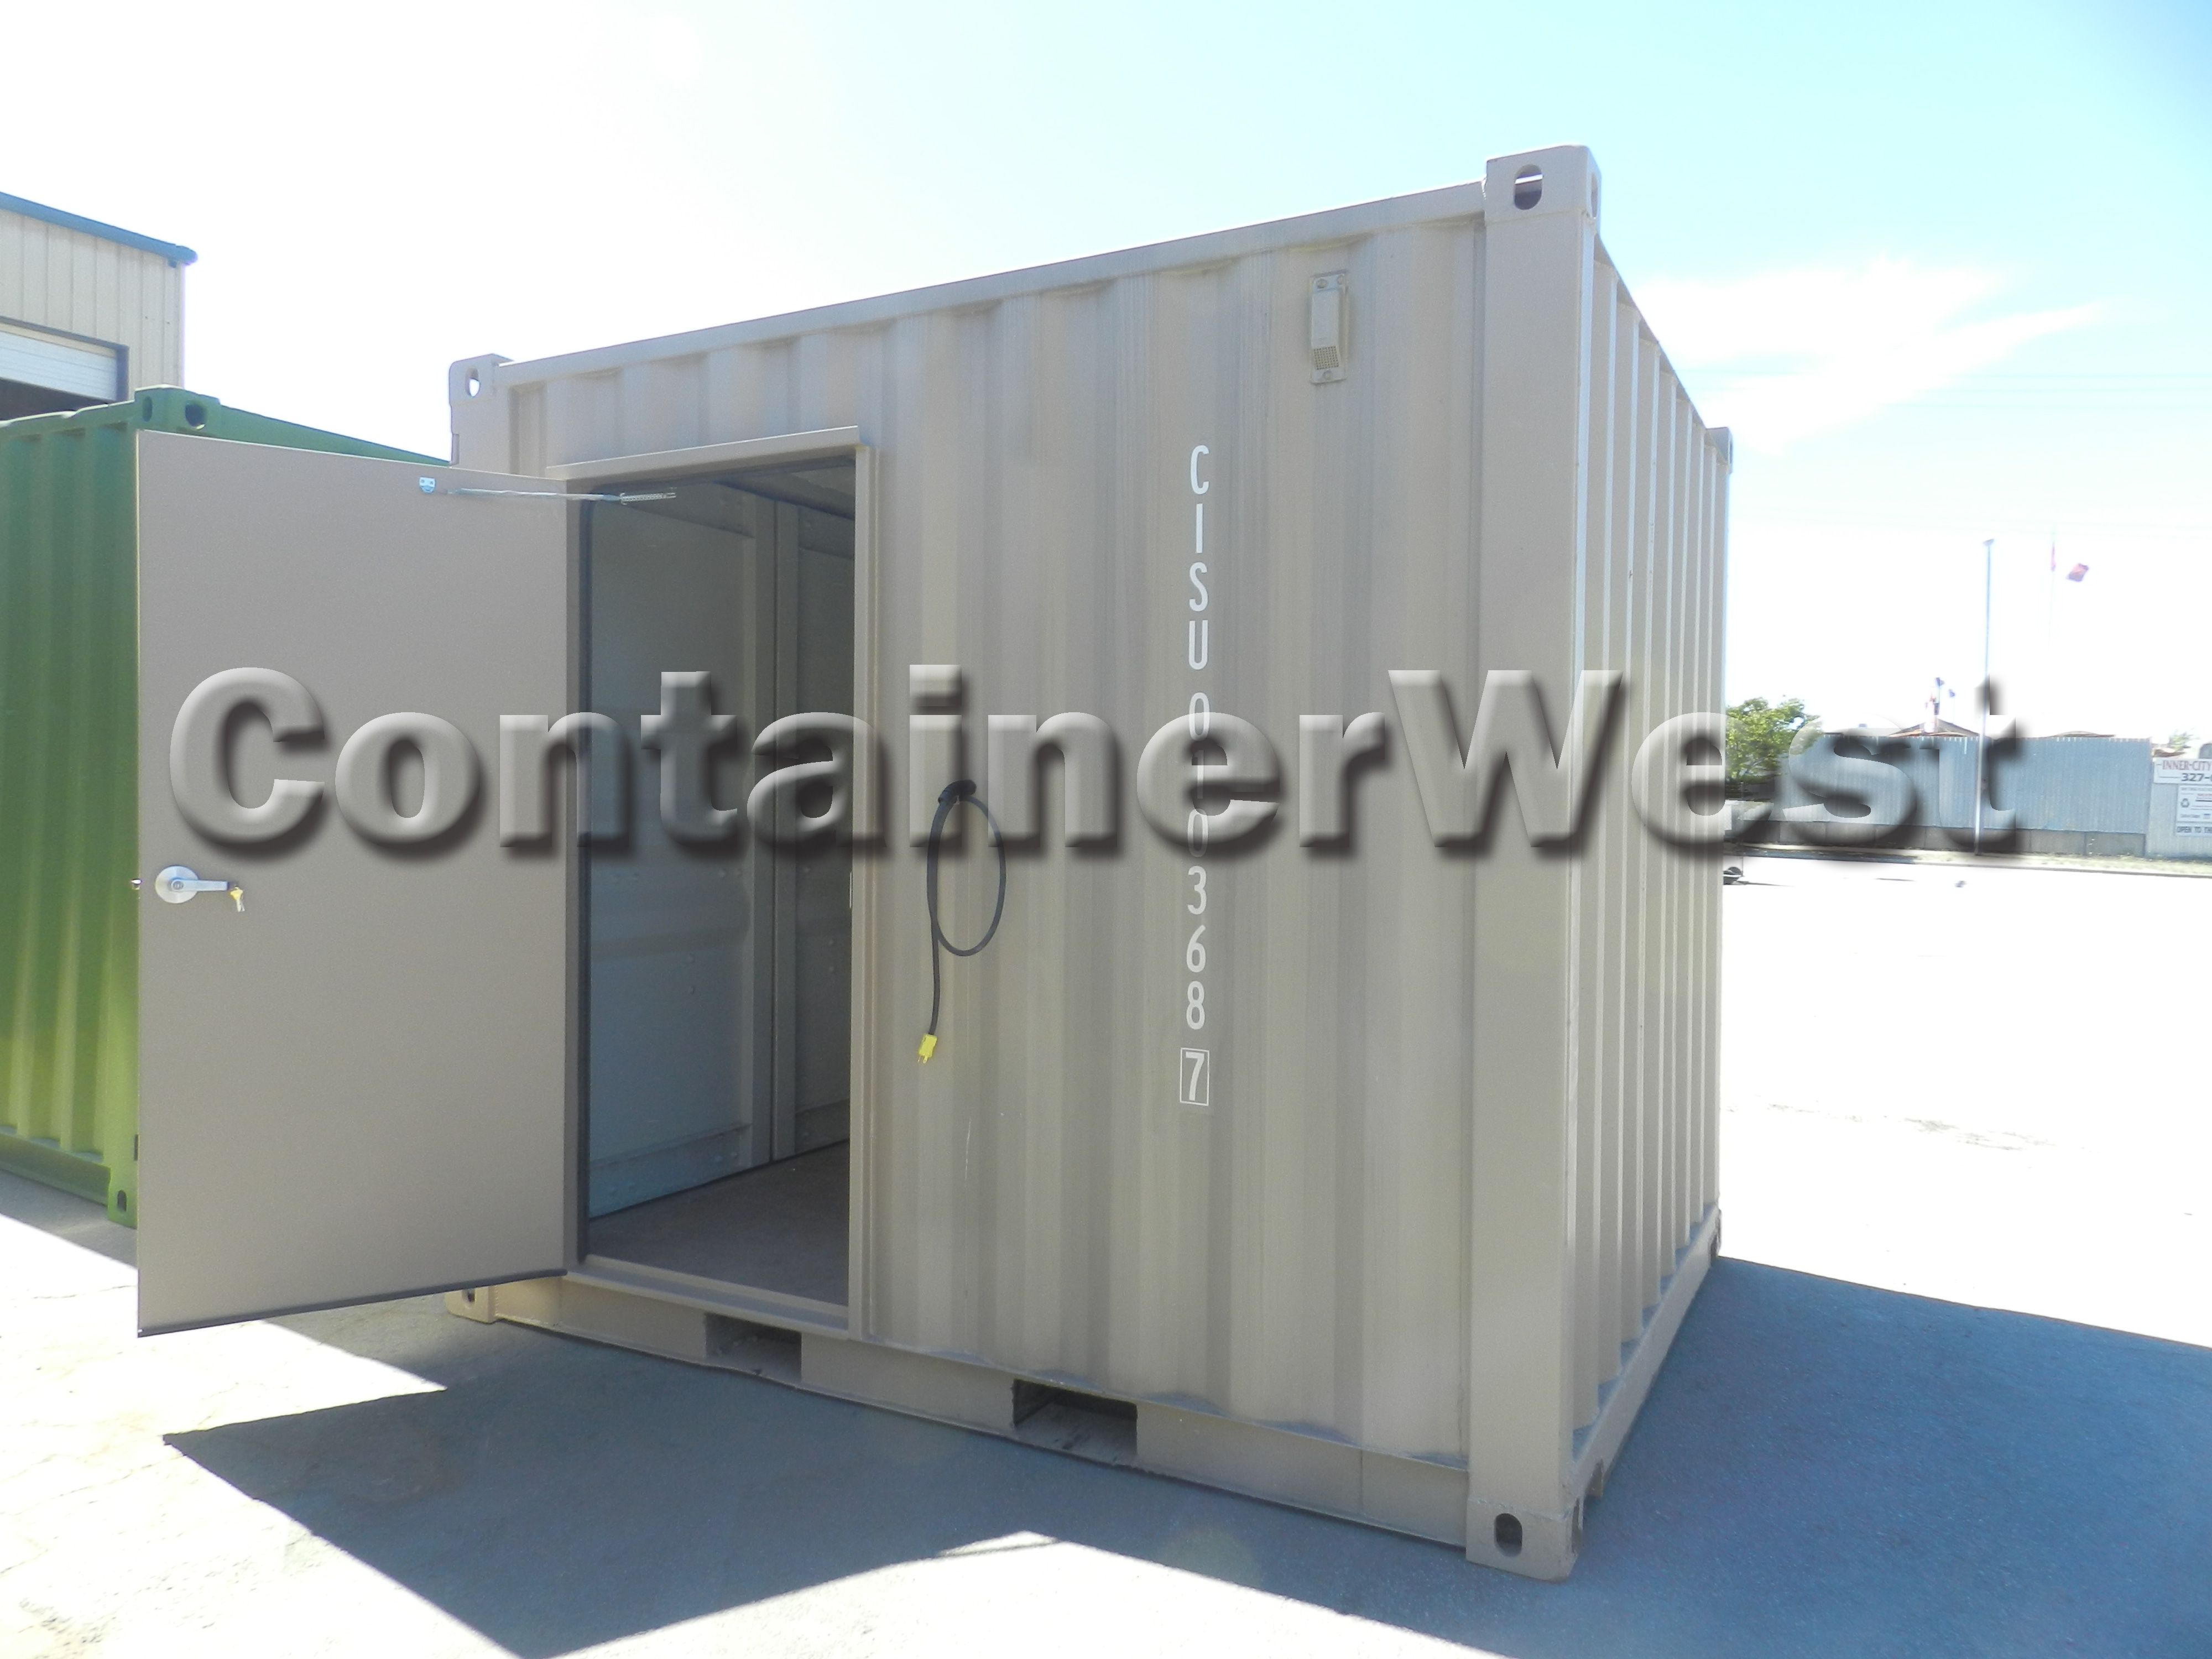 10ft Mini Container With Man Door For Easy Access To Interior Convenient Container House Shipping Container Interior